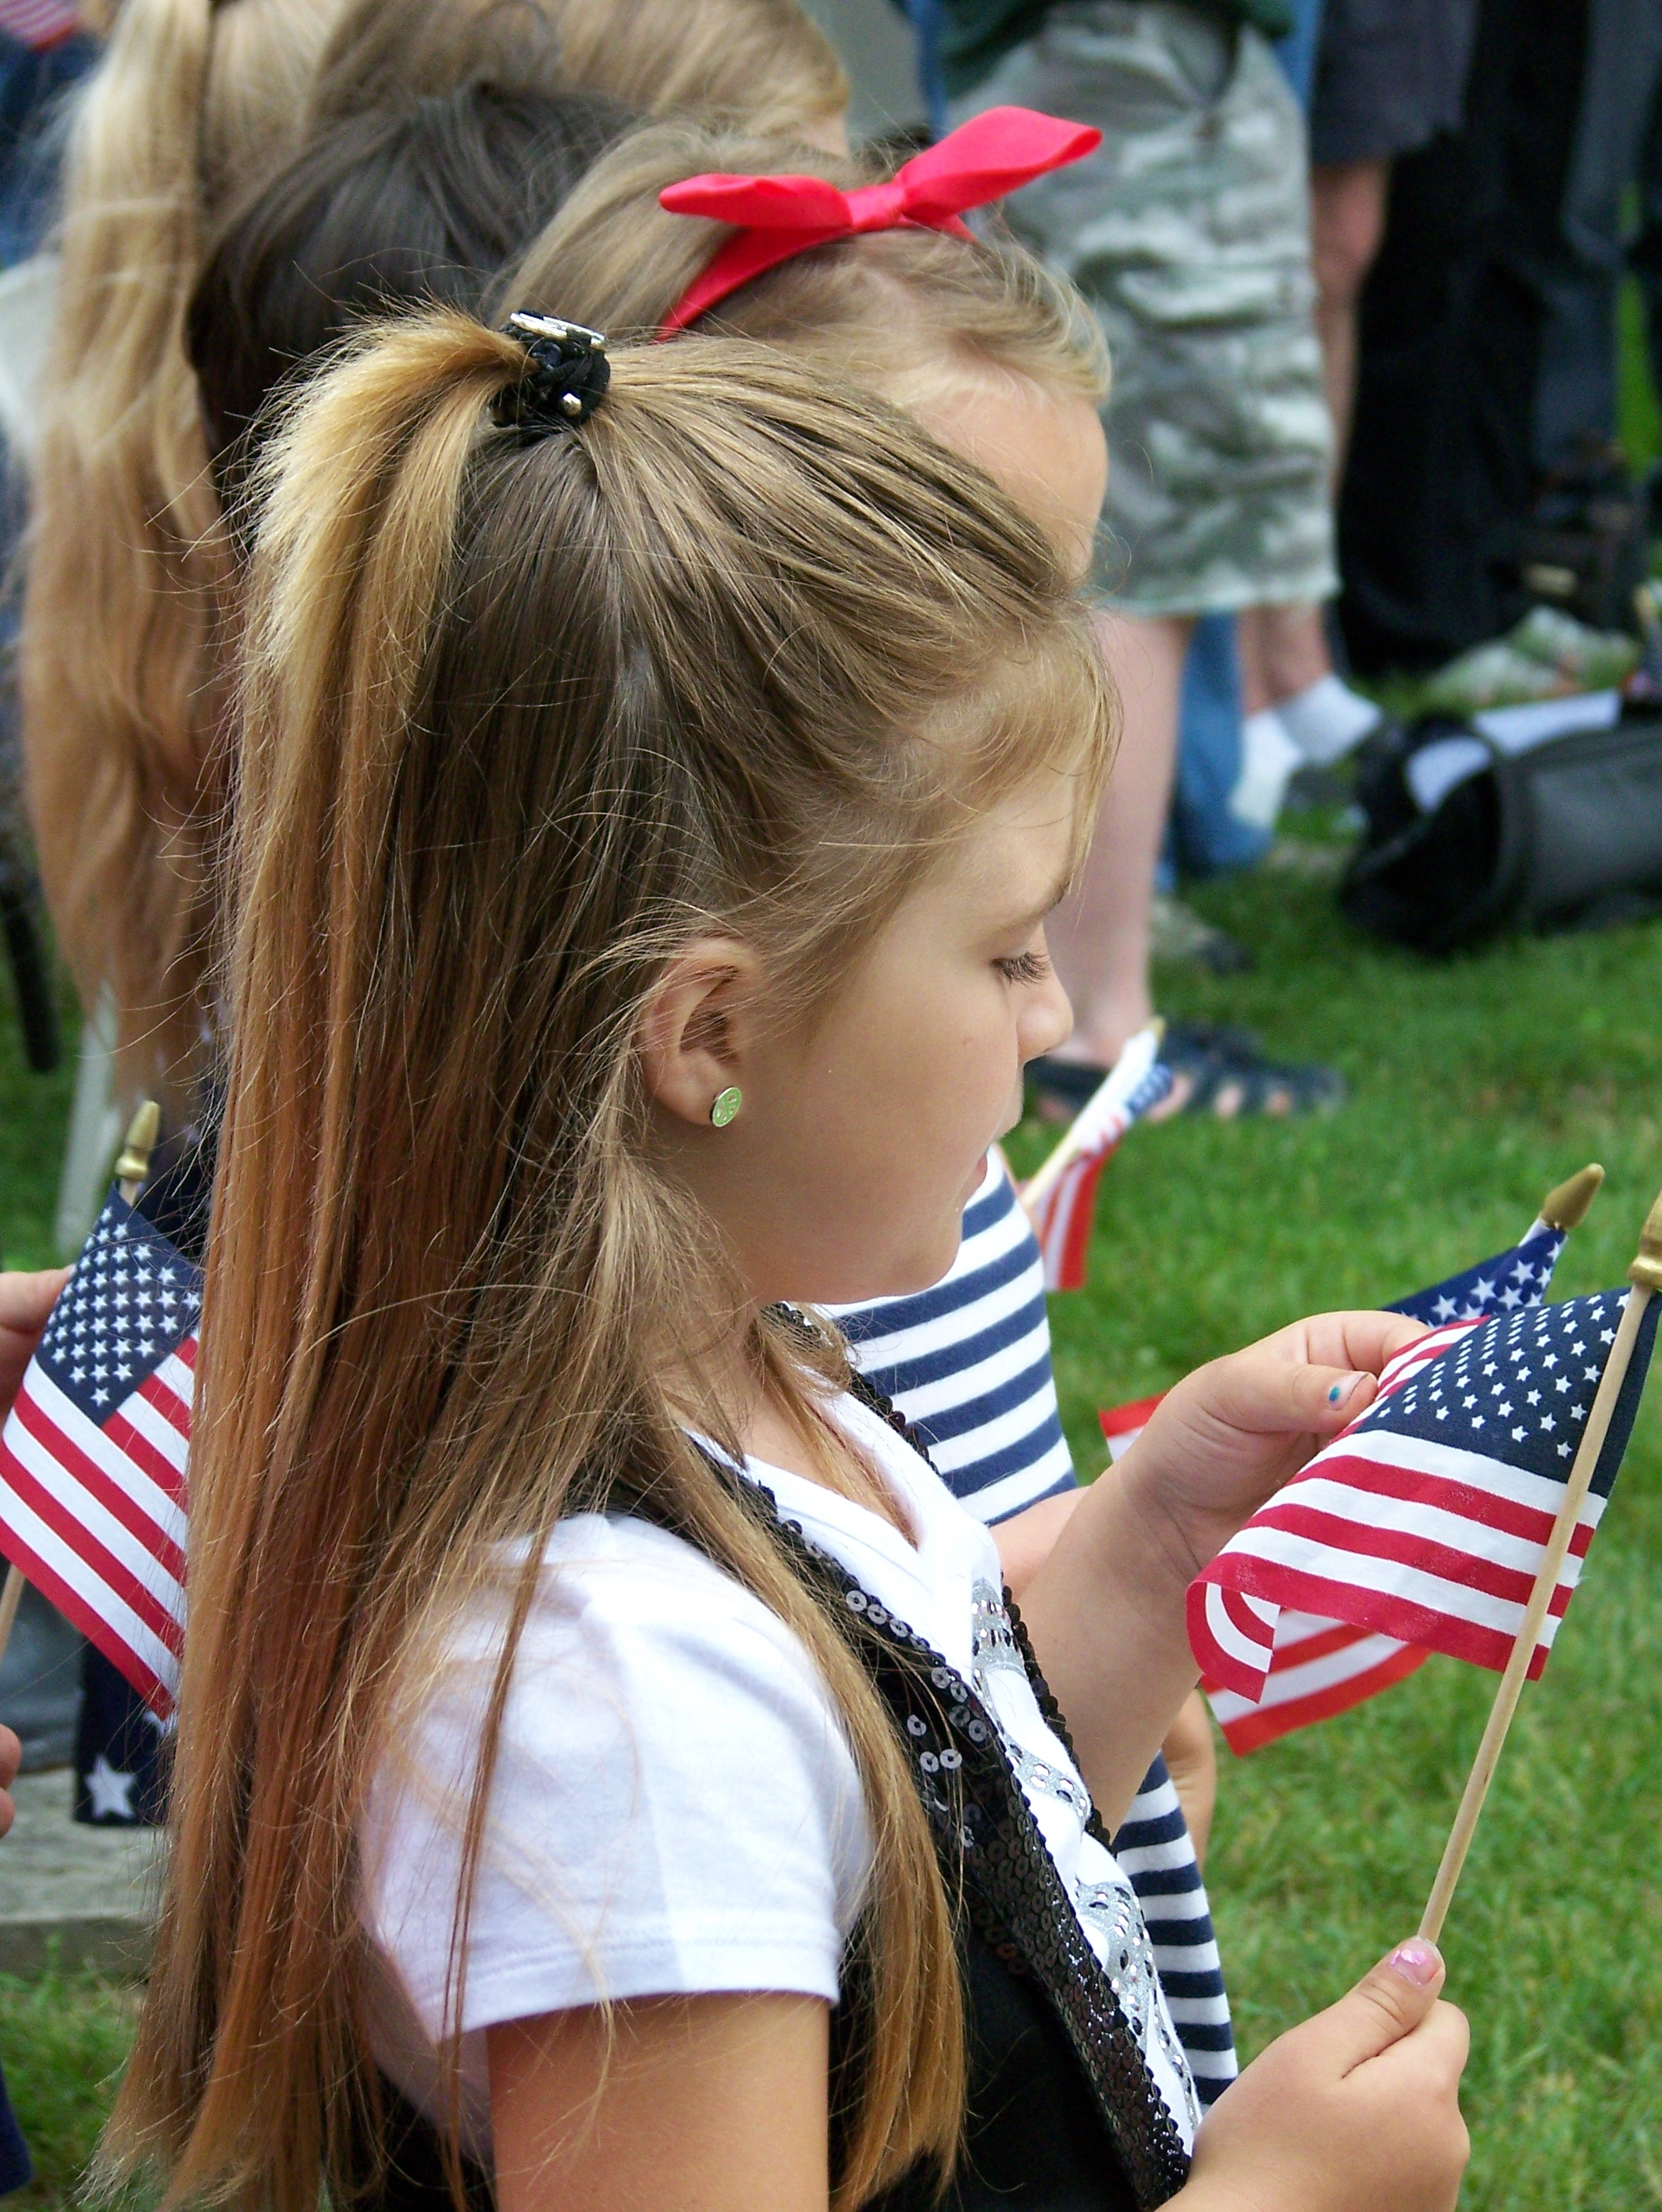 A Young Girl with a Small American Flag